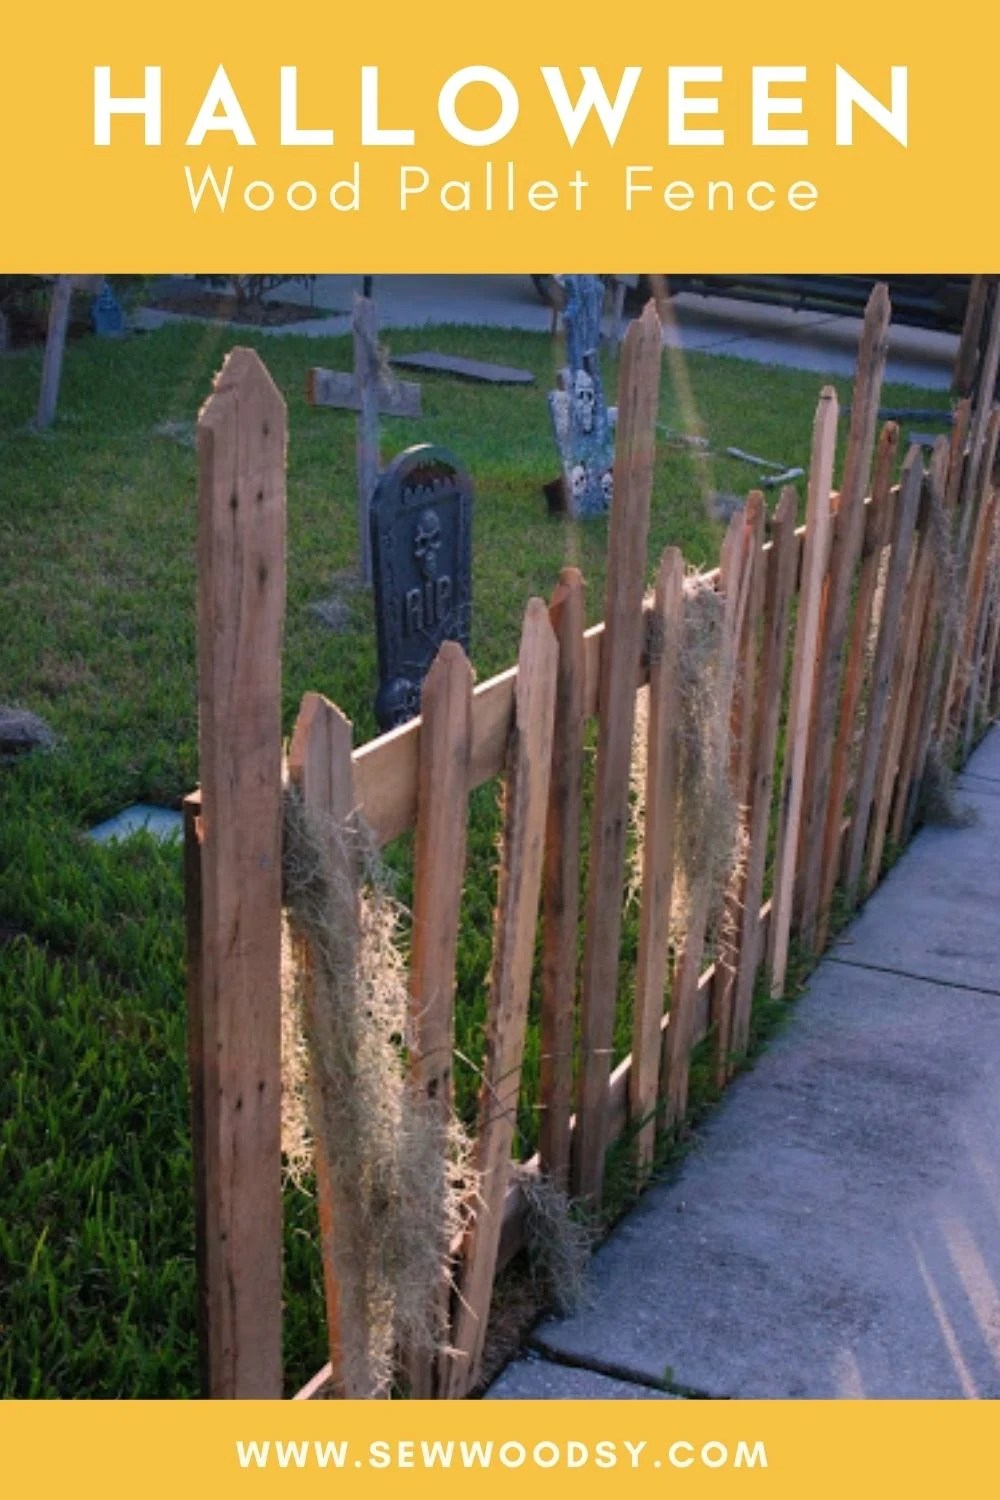 Spikey wood pallet fence with text on image for Pinterest.